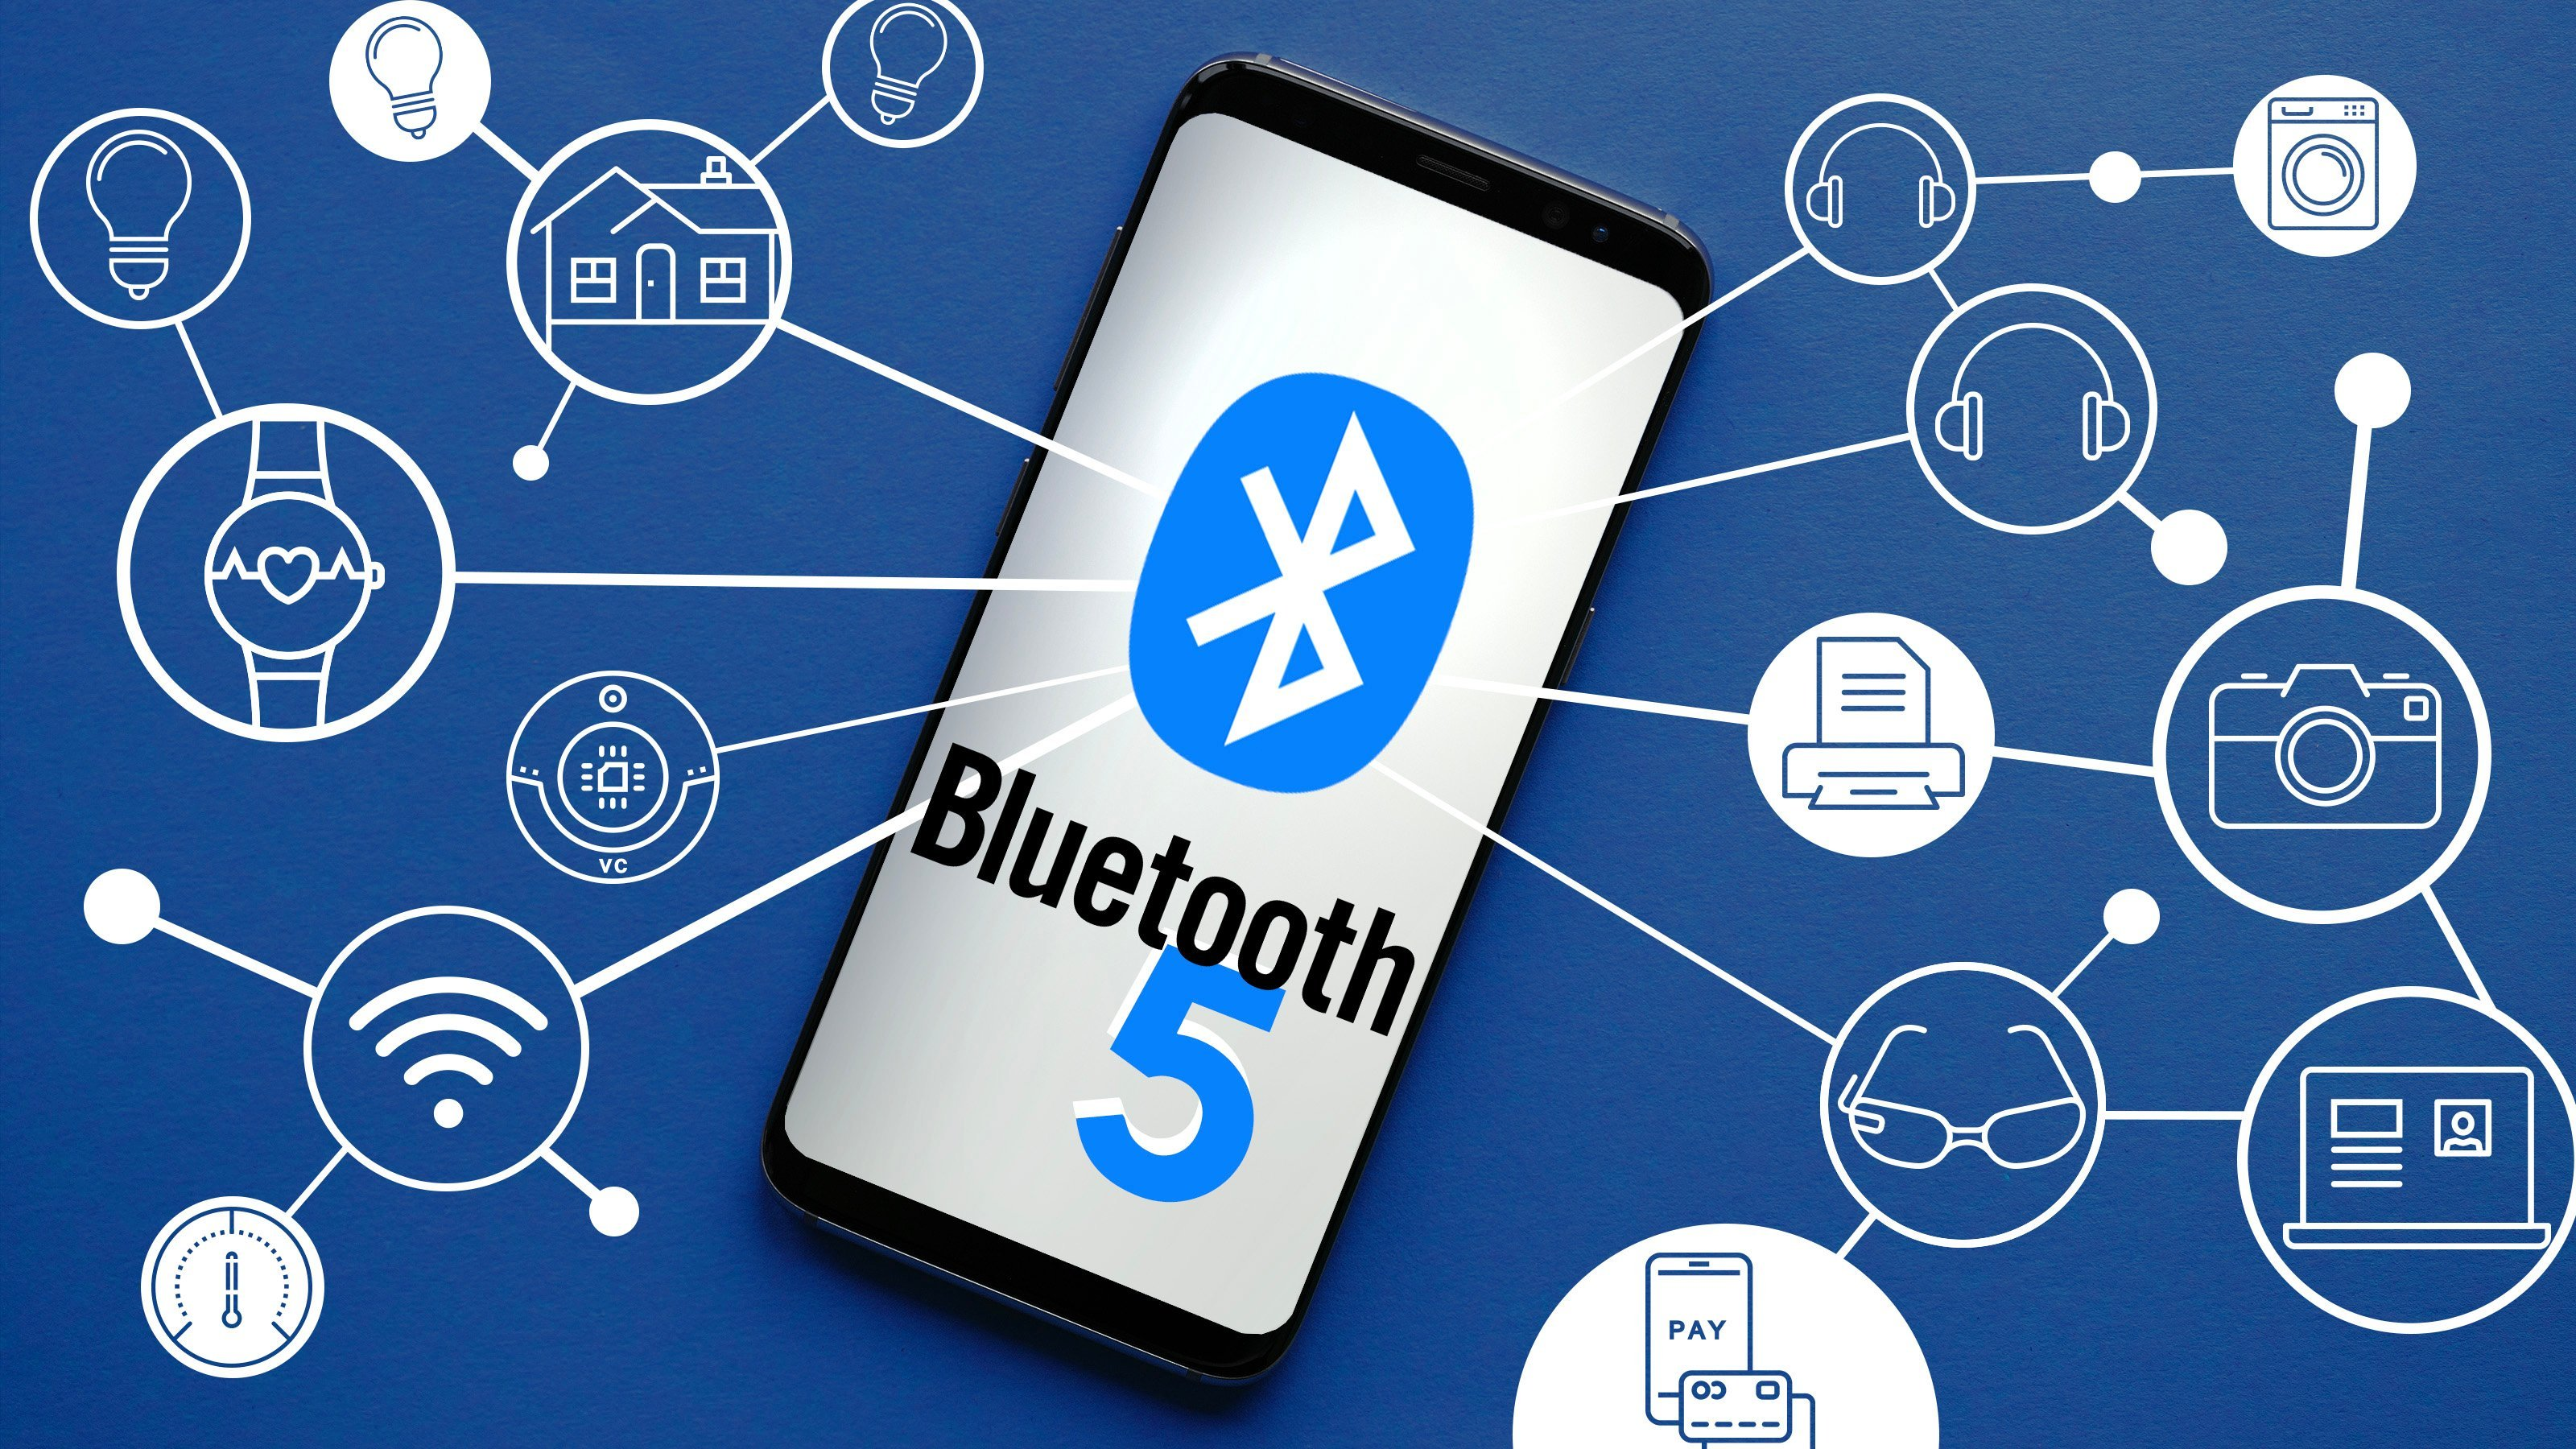 What you don't know about Bluetooth 5 technology - Samma3a Tech